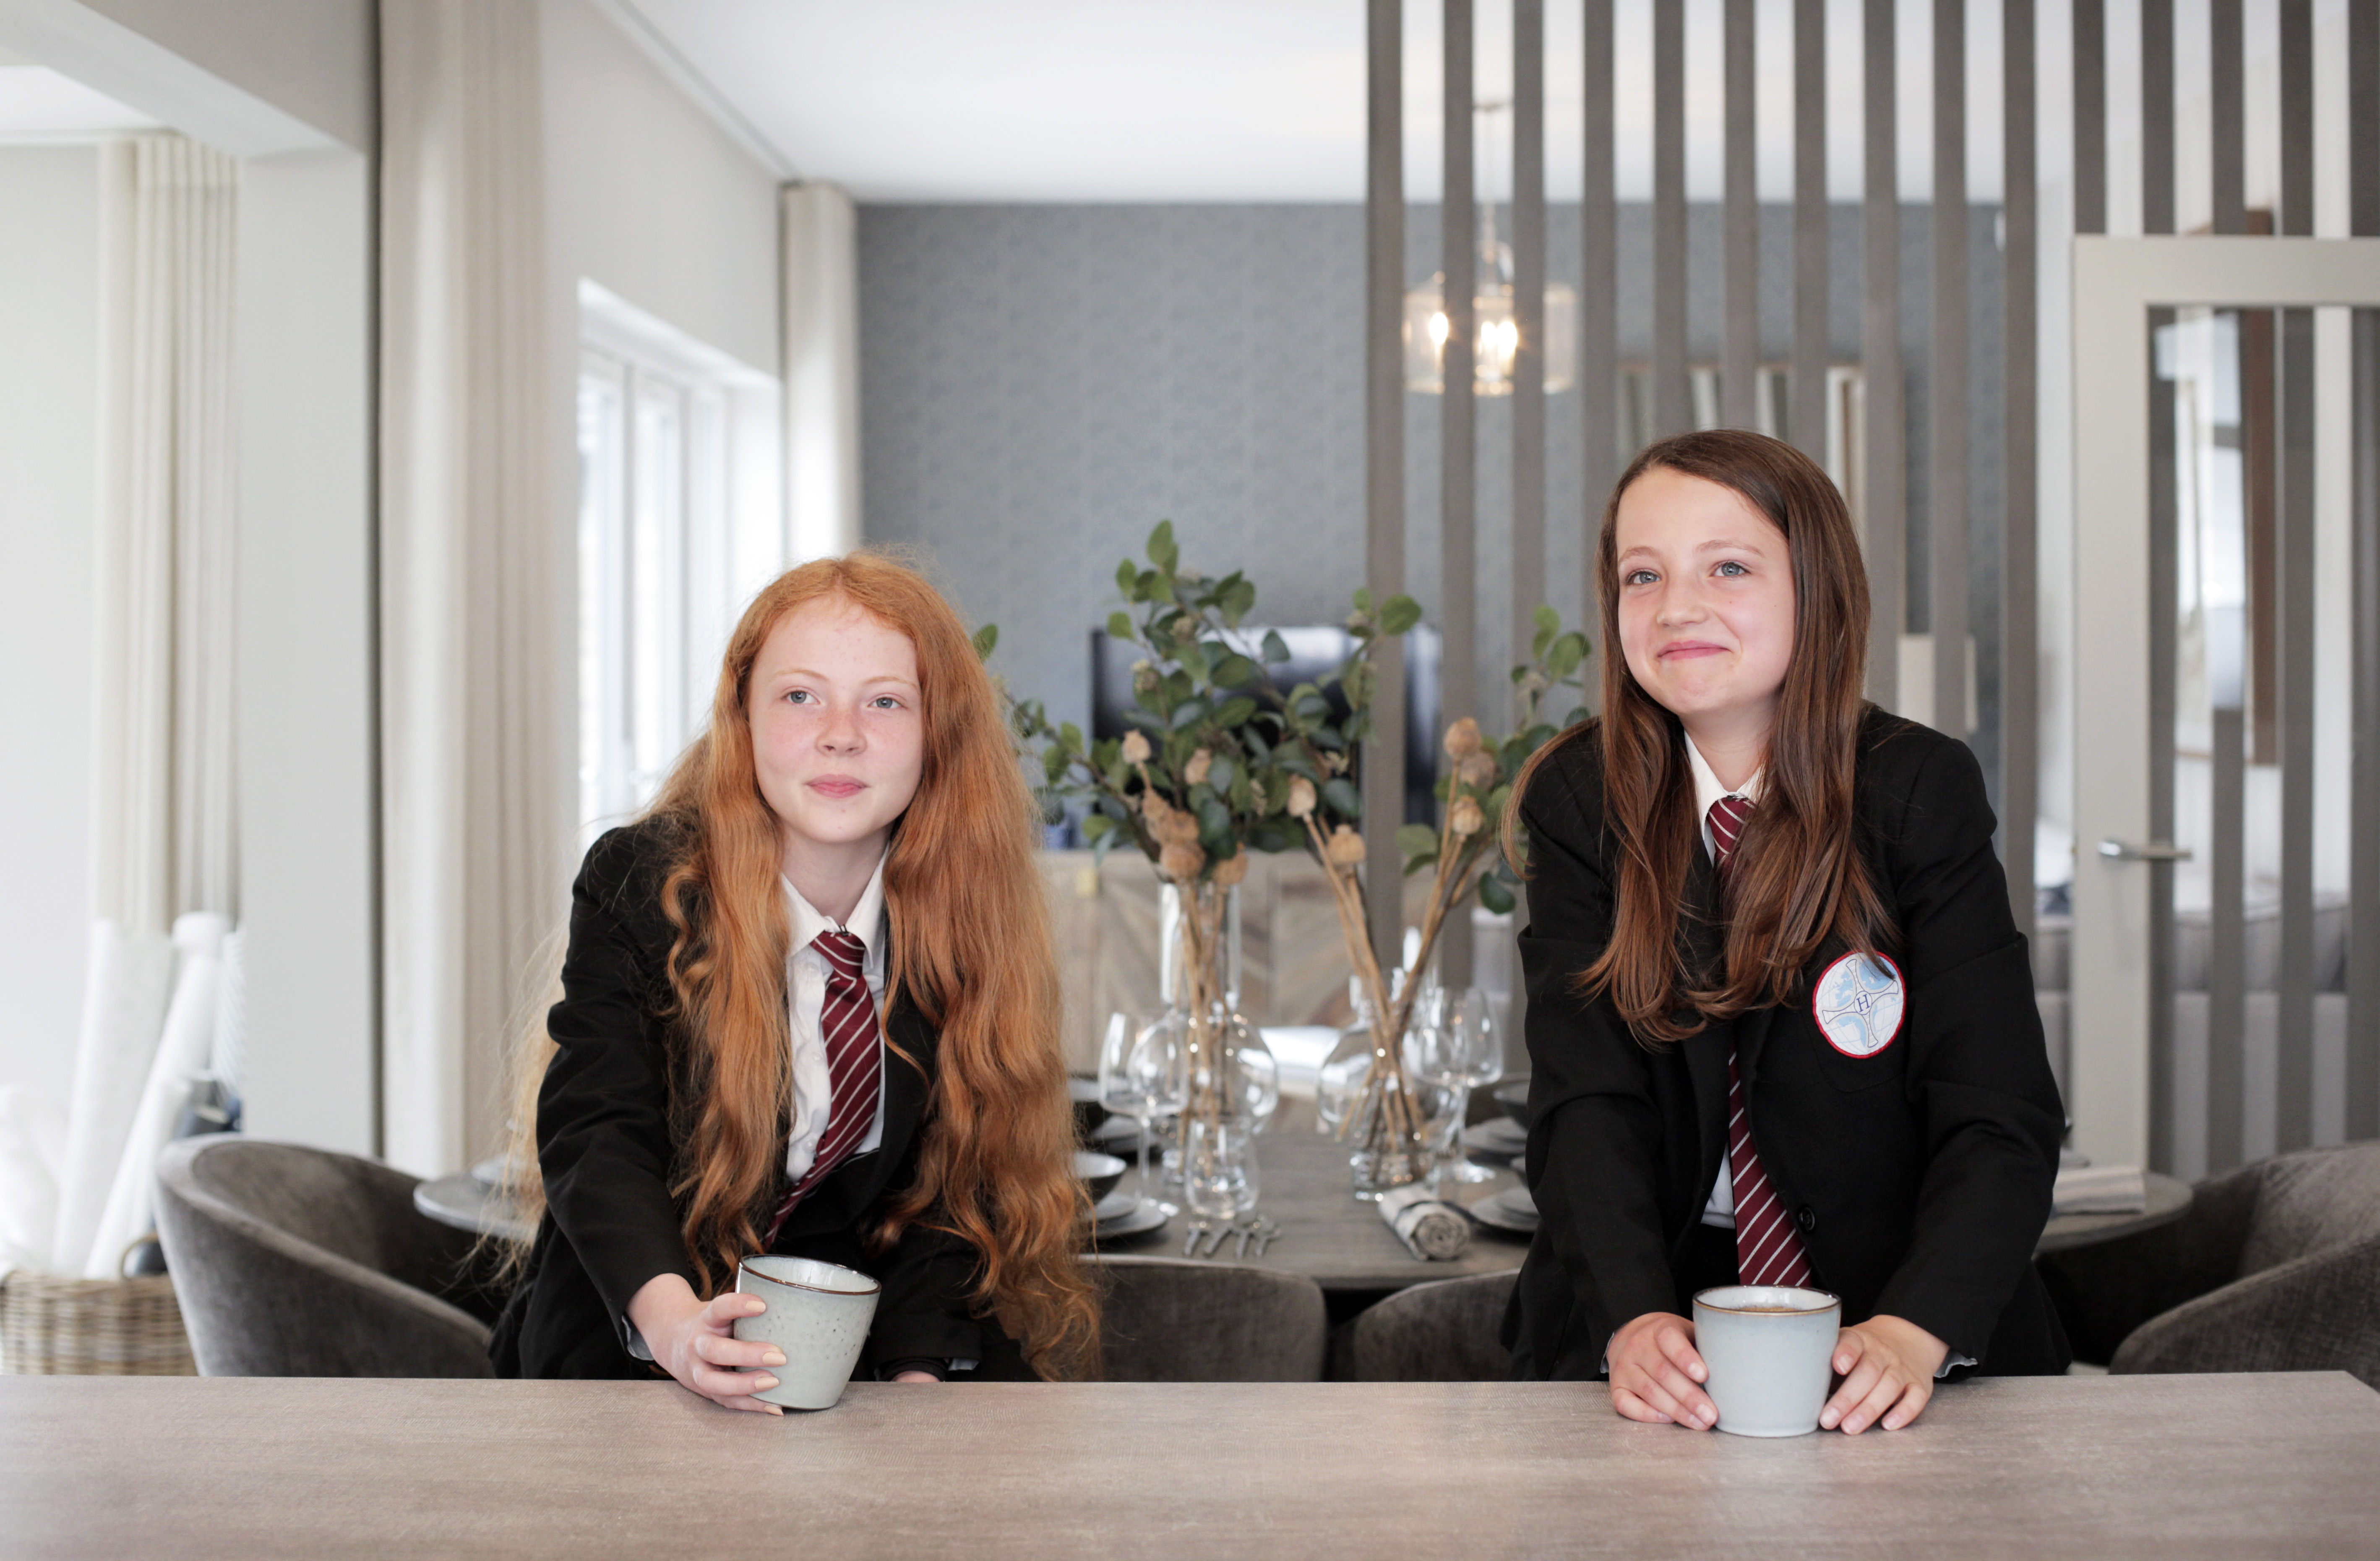 Students Home in on Property PR Challenge